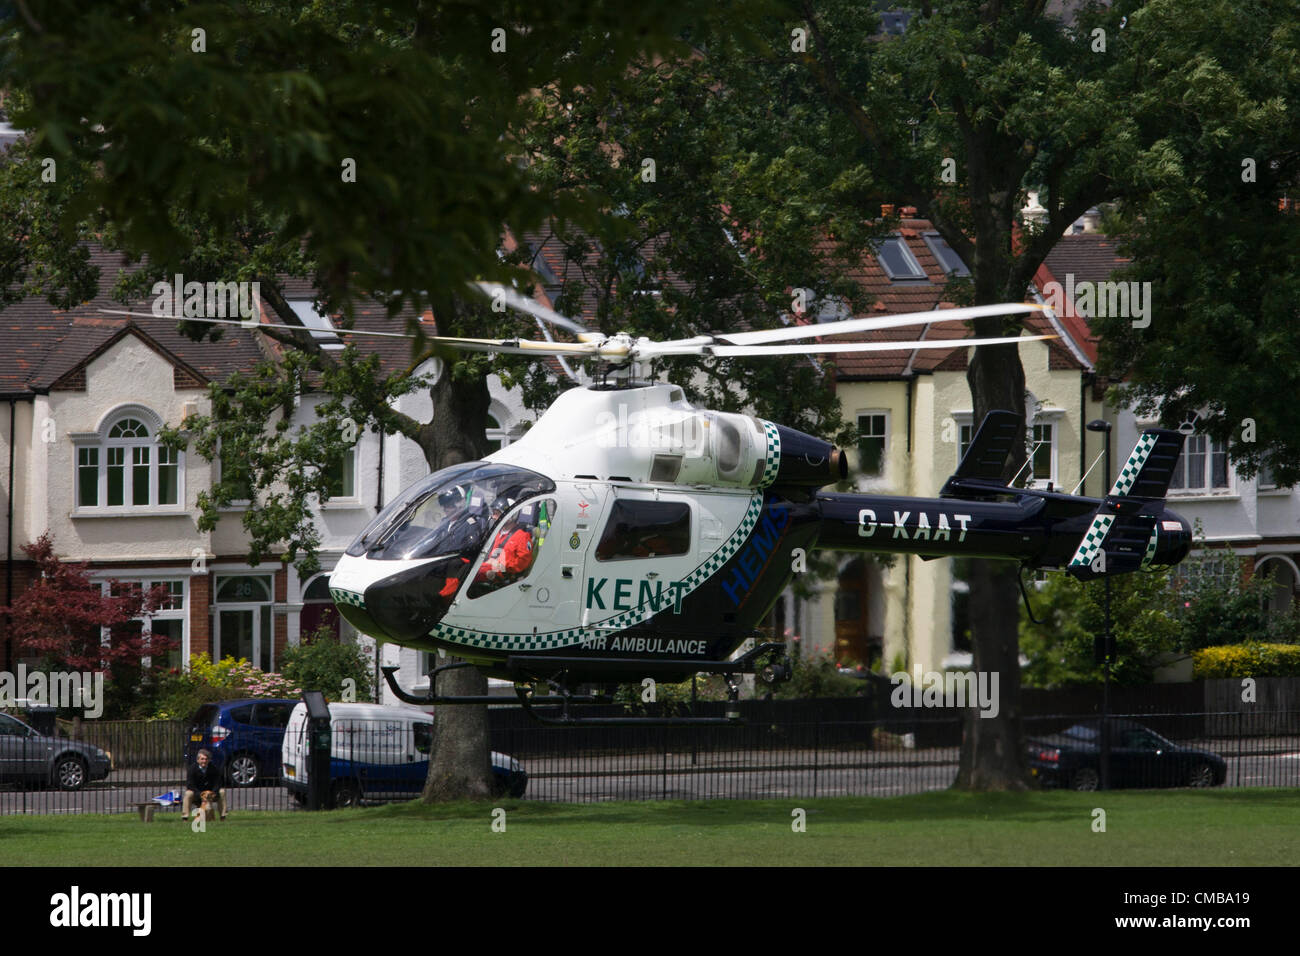 London 10/7/12. G-KAAT, a McDonnell Douglas MD-902 EXPLORER helicopter of the Kent Air Ambulance takes off over Stock Photo